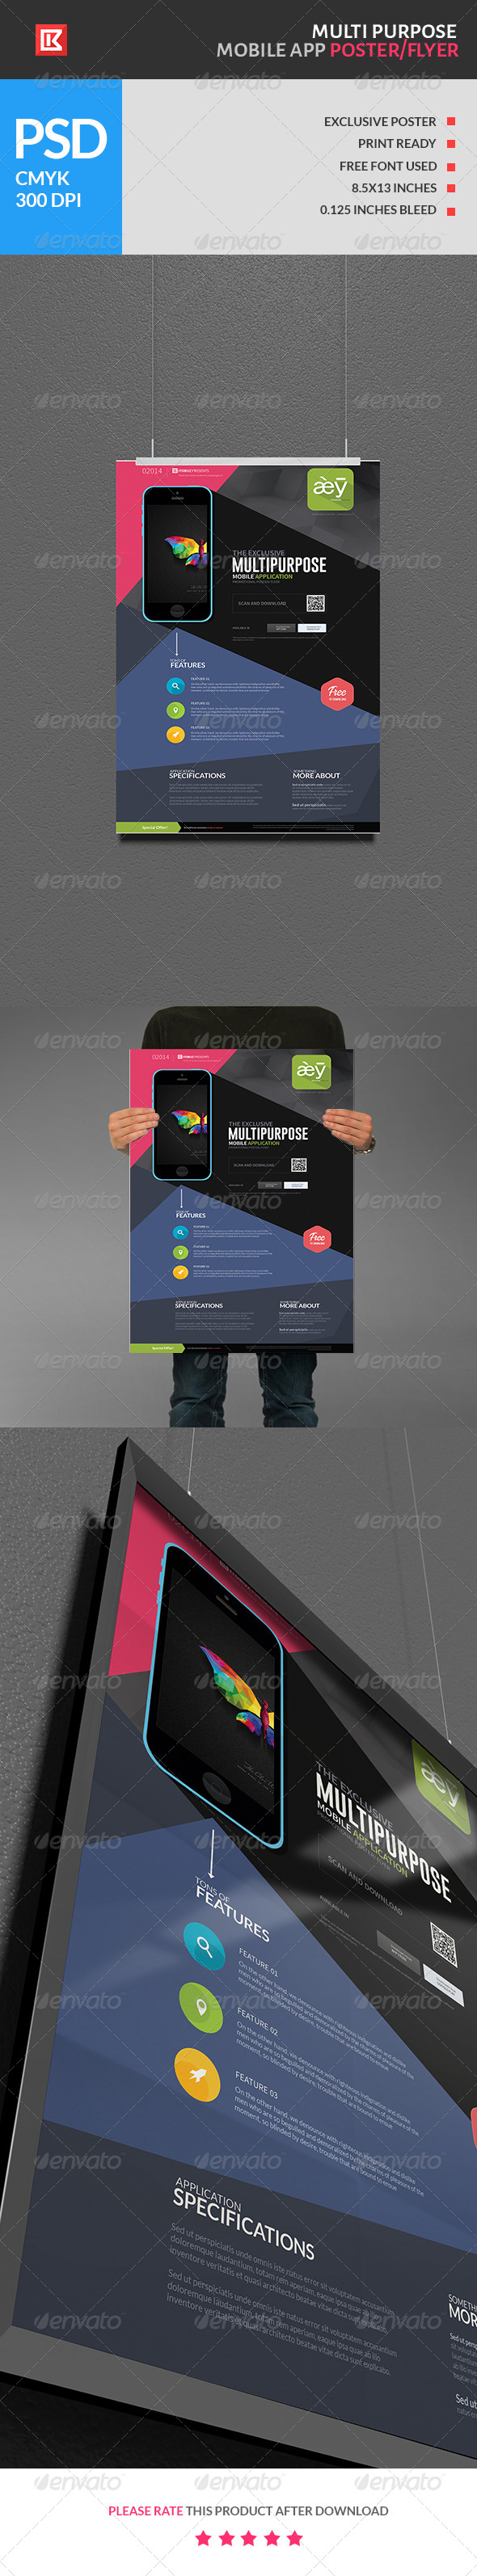 Multipurpose Mobile App Poster Flyer